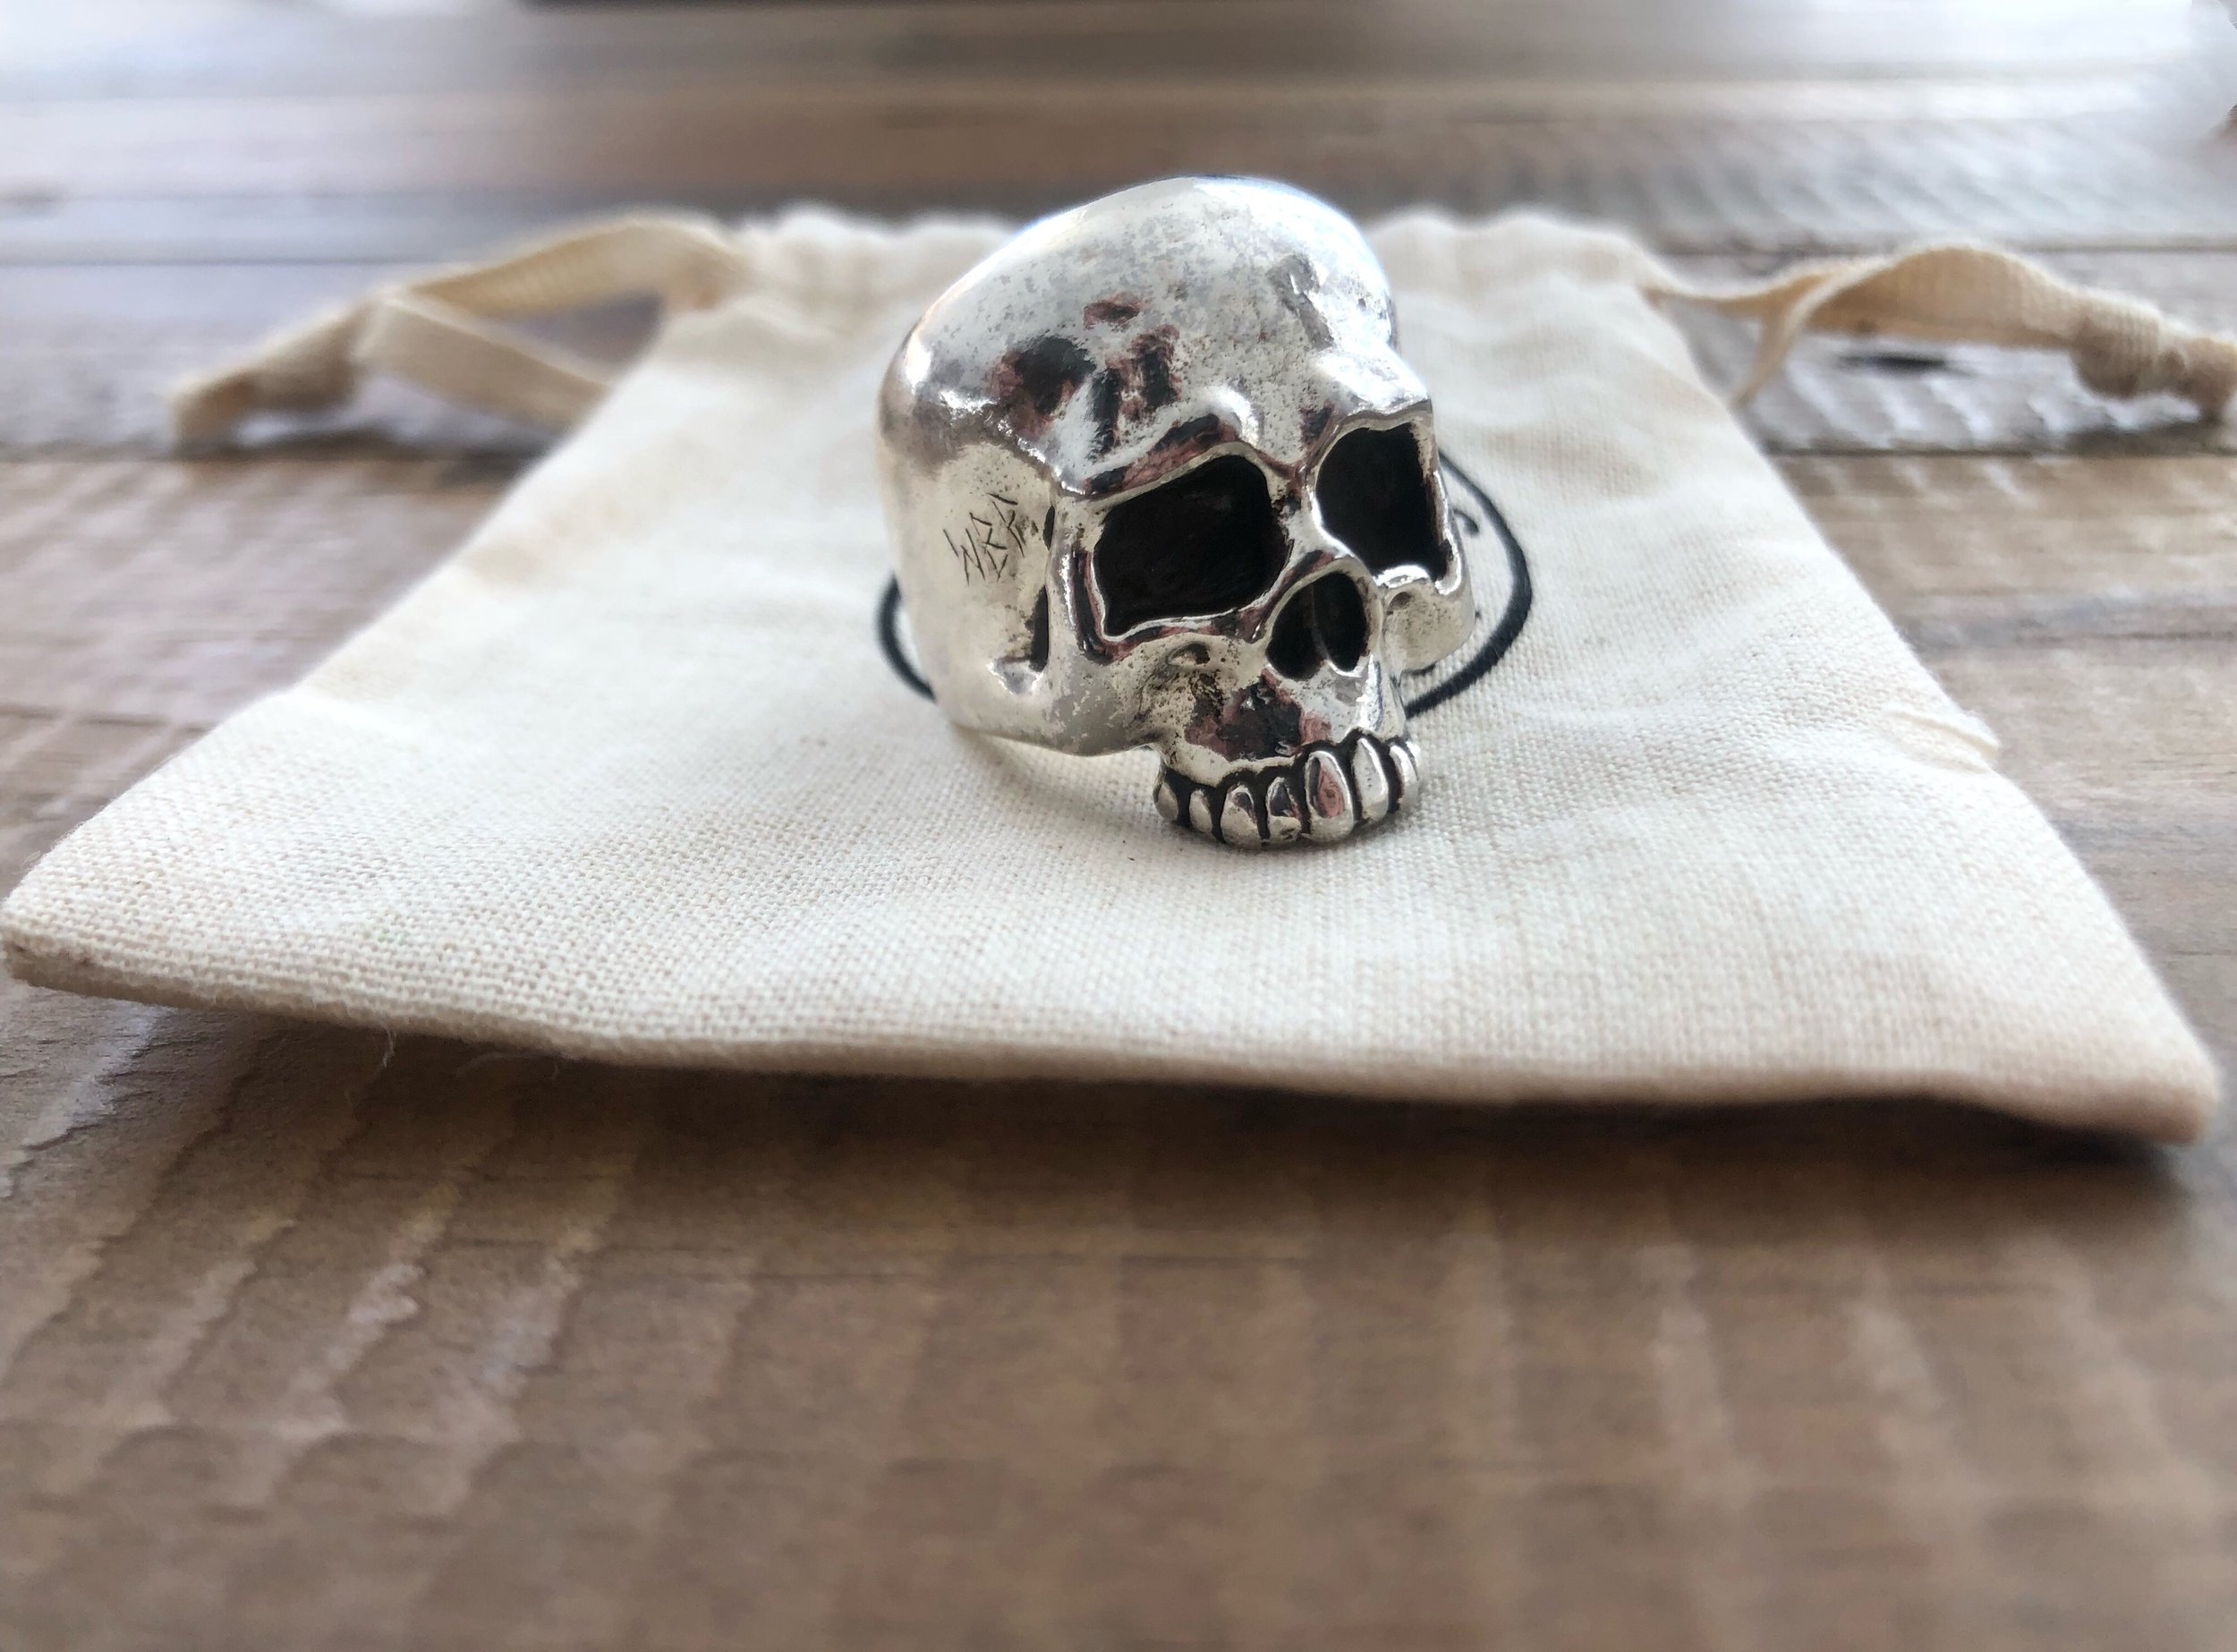 """Large and heavy weighted rings can easily become uncomfortable if they have been designed wrong. This """"Hooligan"""" ring that is pictured I sometimes forget is even on my finger and that is the way it should be. If you are on the market trying to find your next piece. Definitely consider giving them a try you will not be let down.    Cheers,  - LS"""